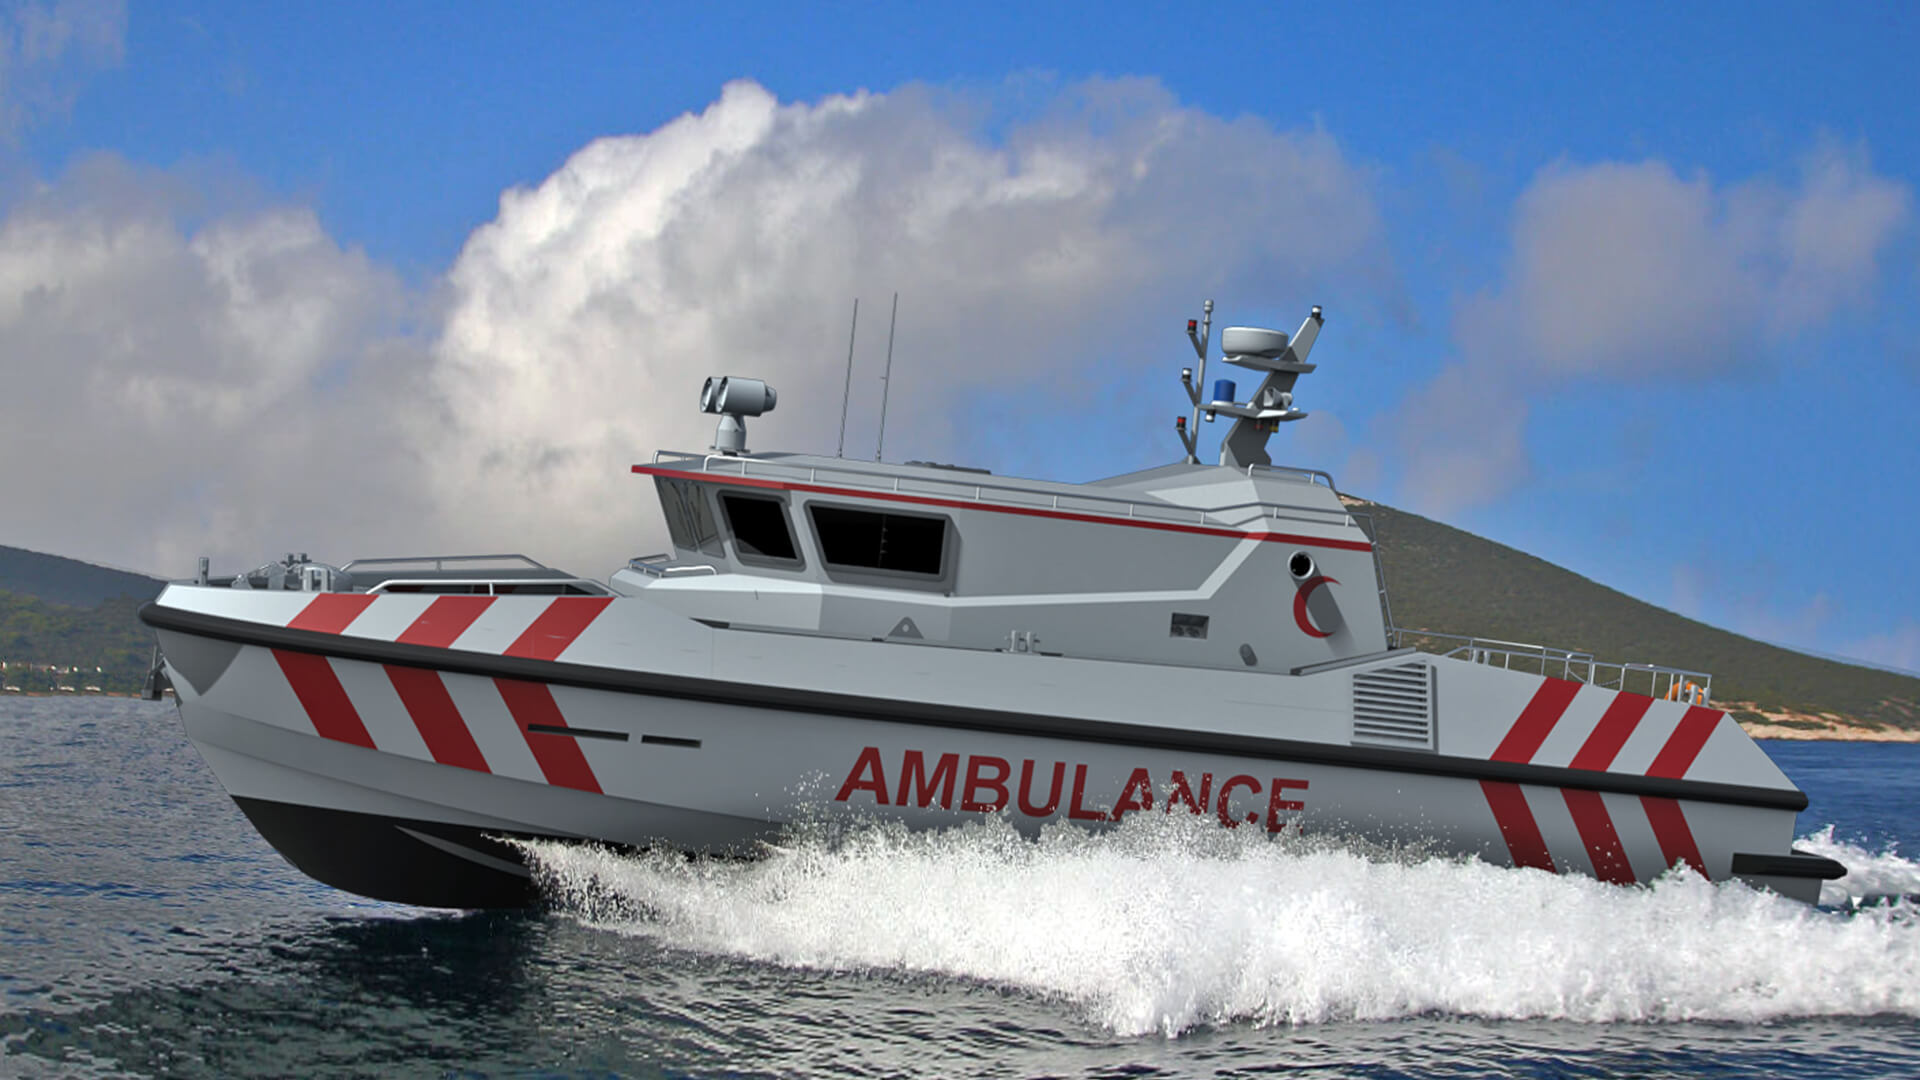 images/vessels/03-utility-support-craft/01-sar-ambulance-boats/05-ares-42-hector-ambulance/01.jpg